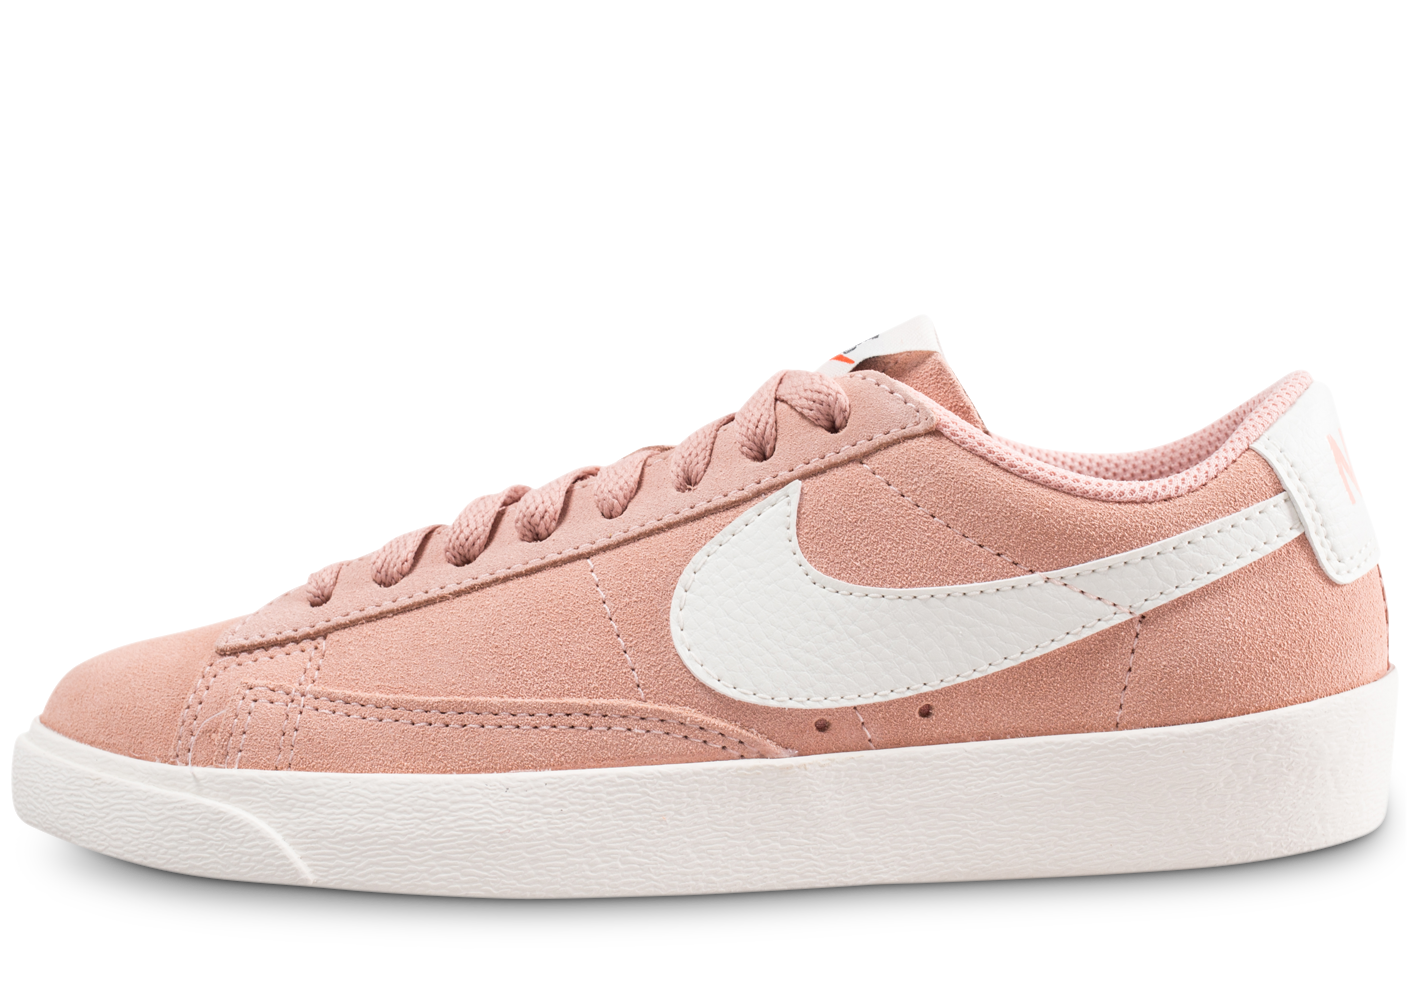 Nike Femme Blazer Low Rose Saumon Baskets